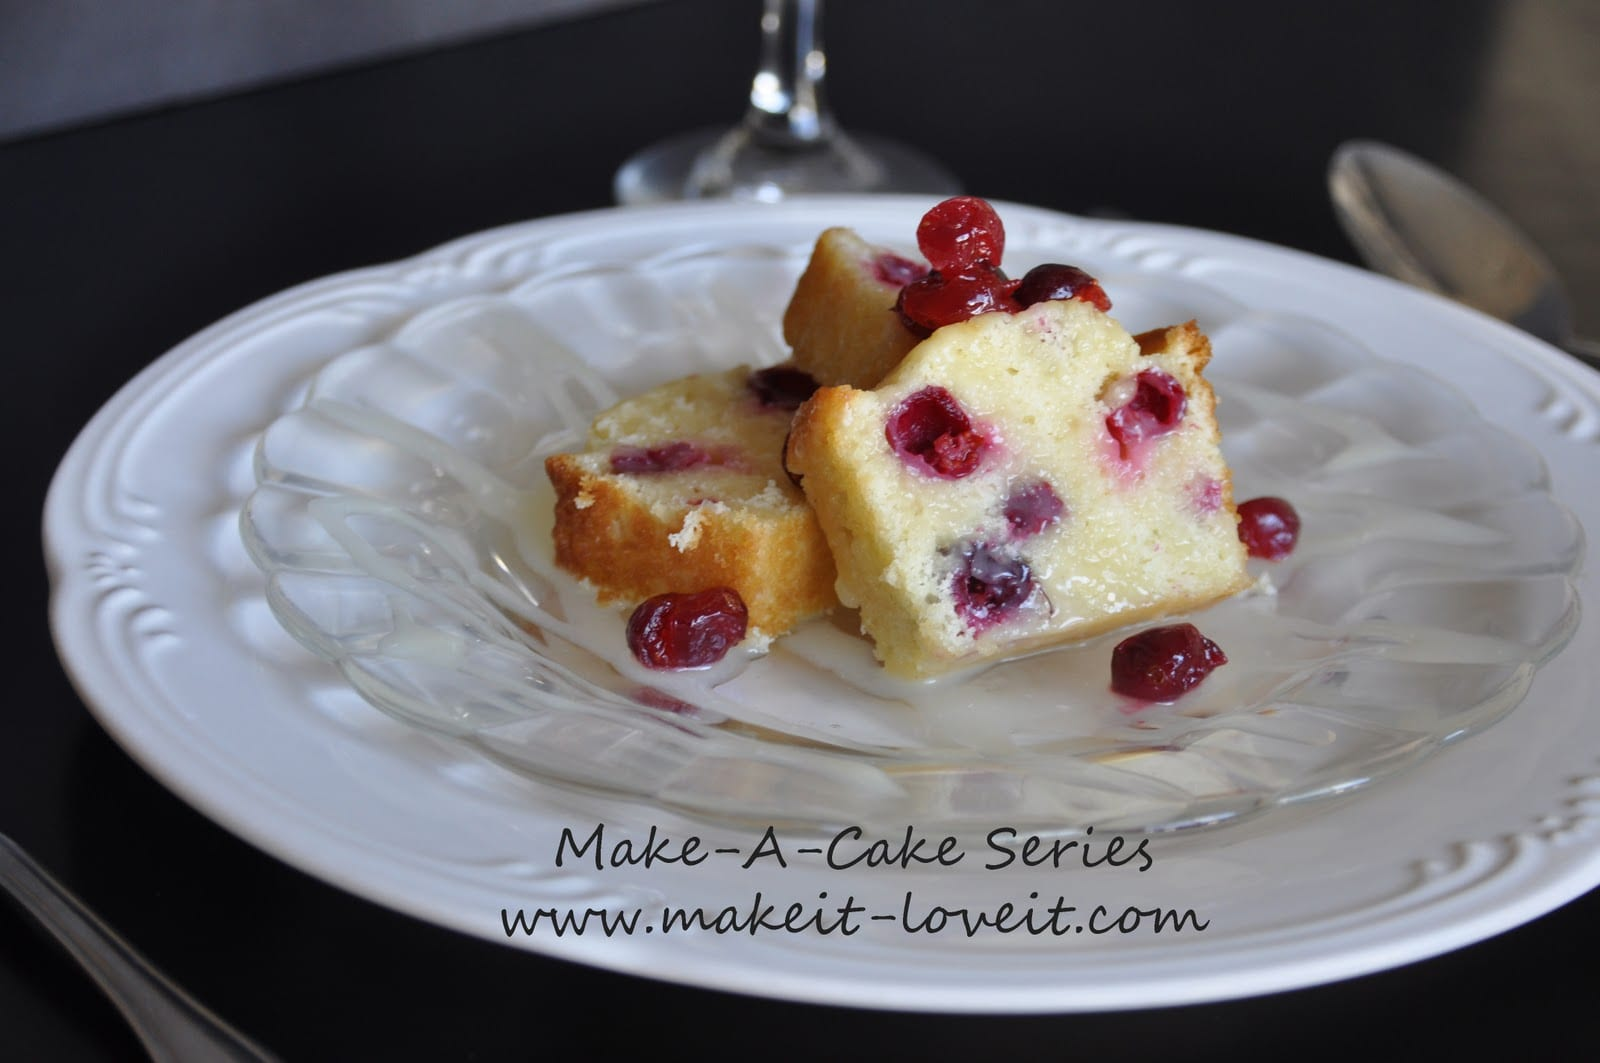 Make-a-Cake Series: Cranberry Cake with Warm Vanilla Butter Sauce